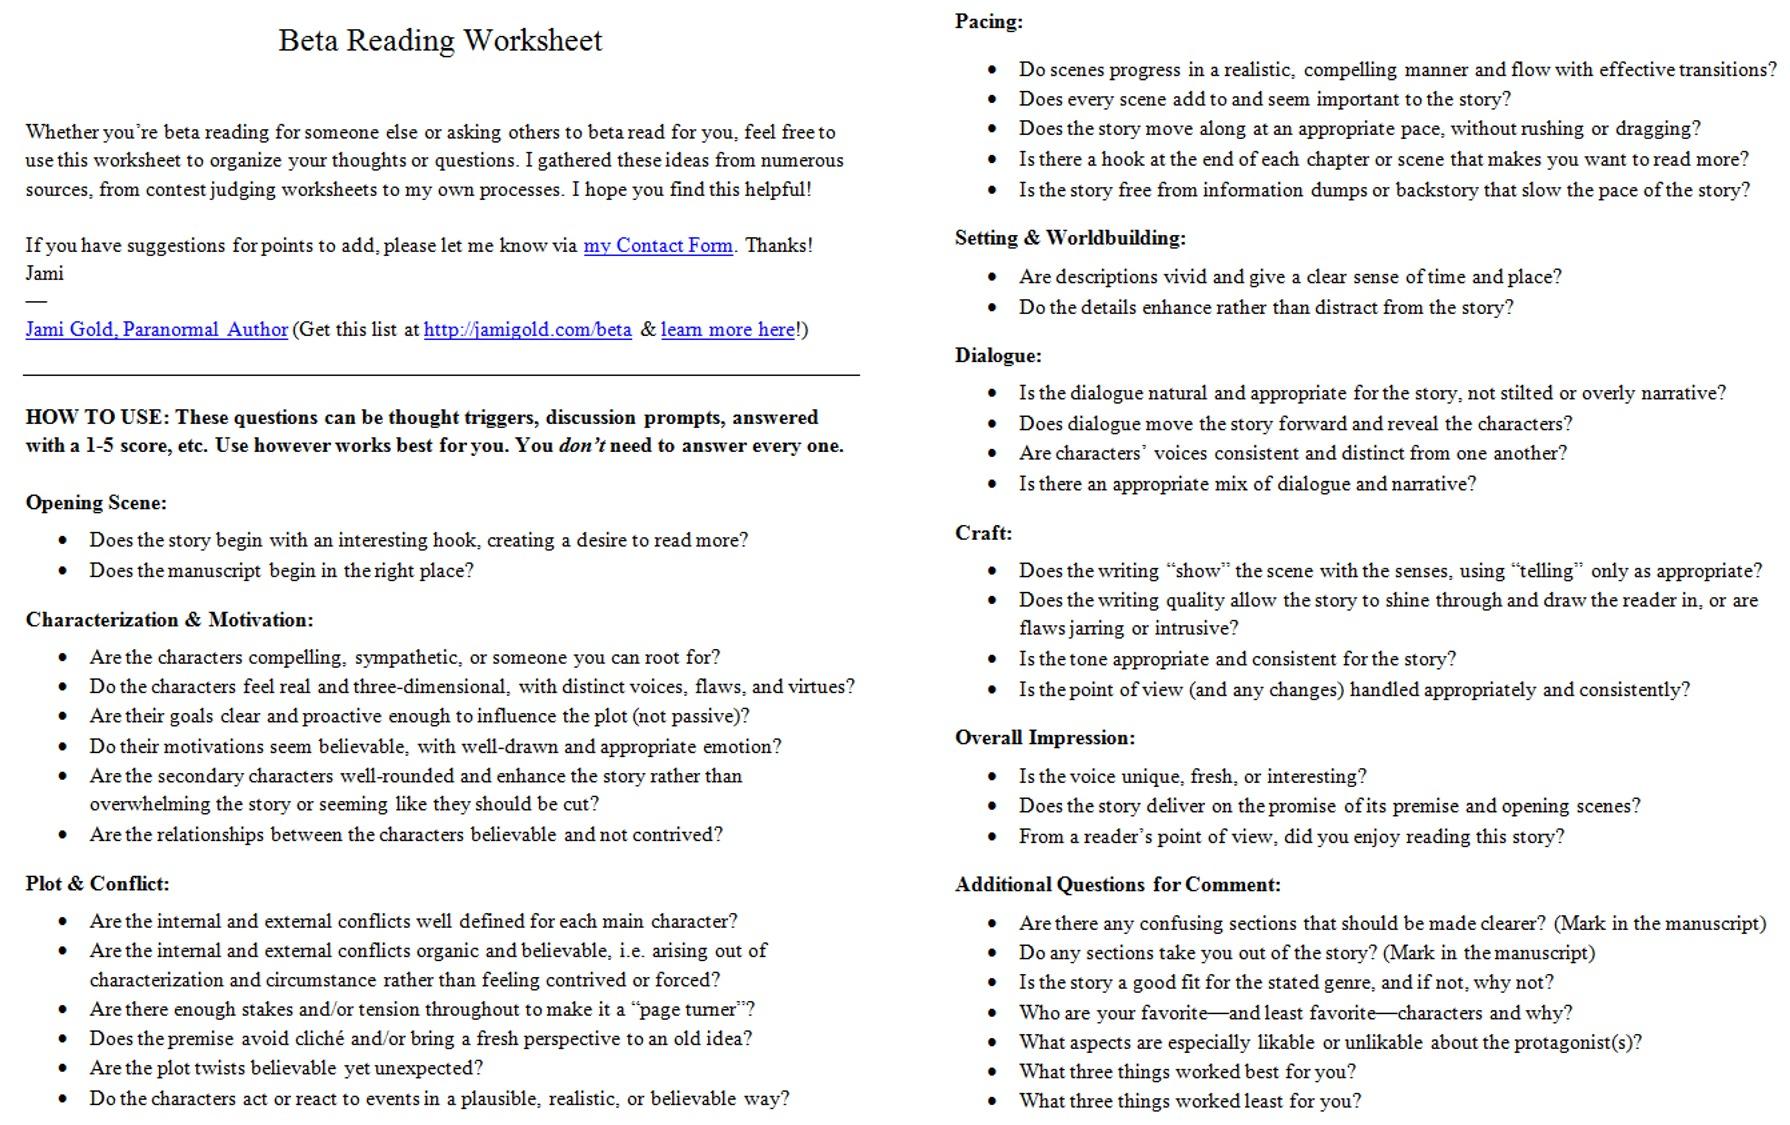 Aldiablosus  Remarkable Worksheets For Writers  Jami Gold Paranormal Author With Fetching Screen Shot Of The Twopage Beta Reading Worksheet With Extraordinary Inference Worksheets St Grade Also Free Printable English Grammar Worksheets For Grade  In Addition Af Form  Performance Feedback Worksheet And Finding A Fraction Of A Number Worksheet As Well As Islamic Worksheets For Children Additionally Printable Preschool Activities Worksheets From Jamigoldcom With Aldiablosus  Fetching Worksheets For Writers  Jami Gold Paranormal Author With Extraordinary Screen Shot Of The Twopage Beta Reading Worksheet And Remarkable Inference Worksheets St Grade Also Free Printable English Grammar Worksheets For Grade  In Addition Af Form  Performance Feedback Worksheet From Jamigoldcom